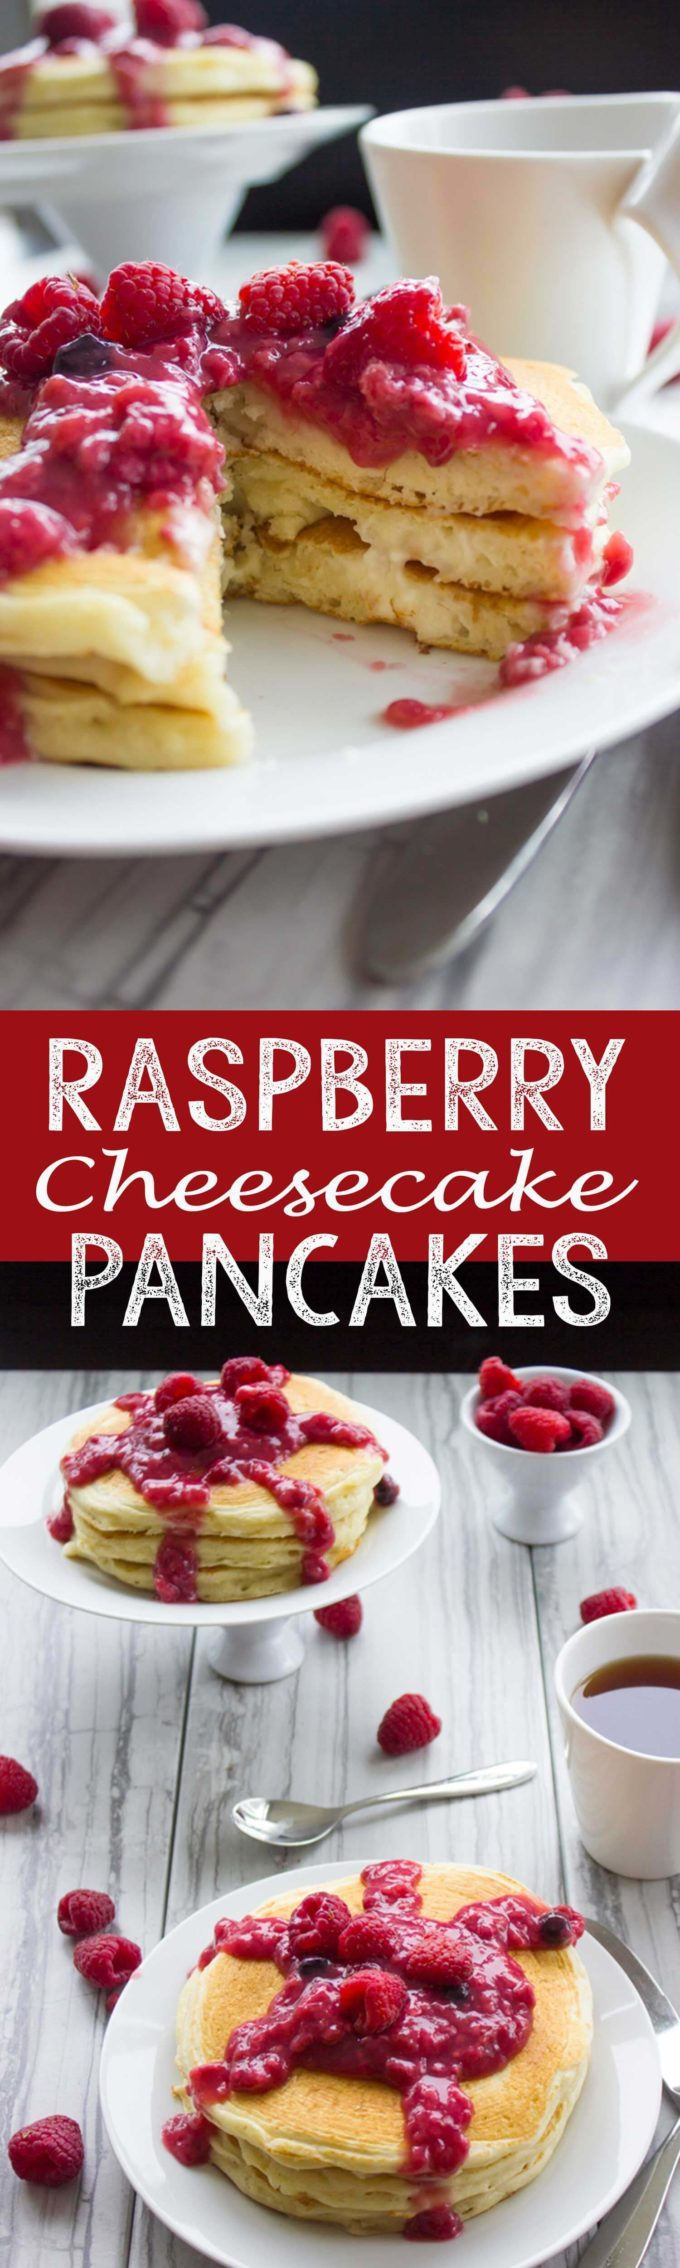 Raspberry Cheesecake Pancakes are the perfect breakfast option